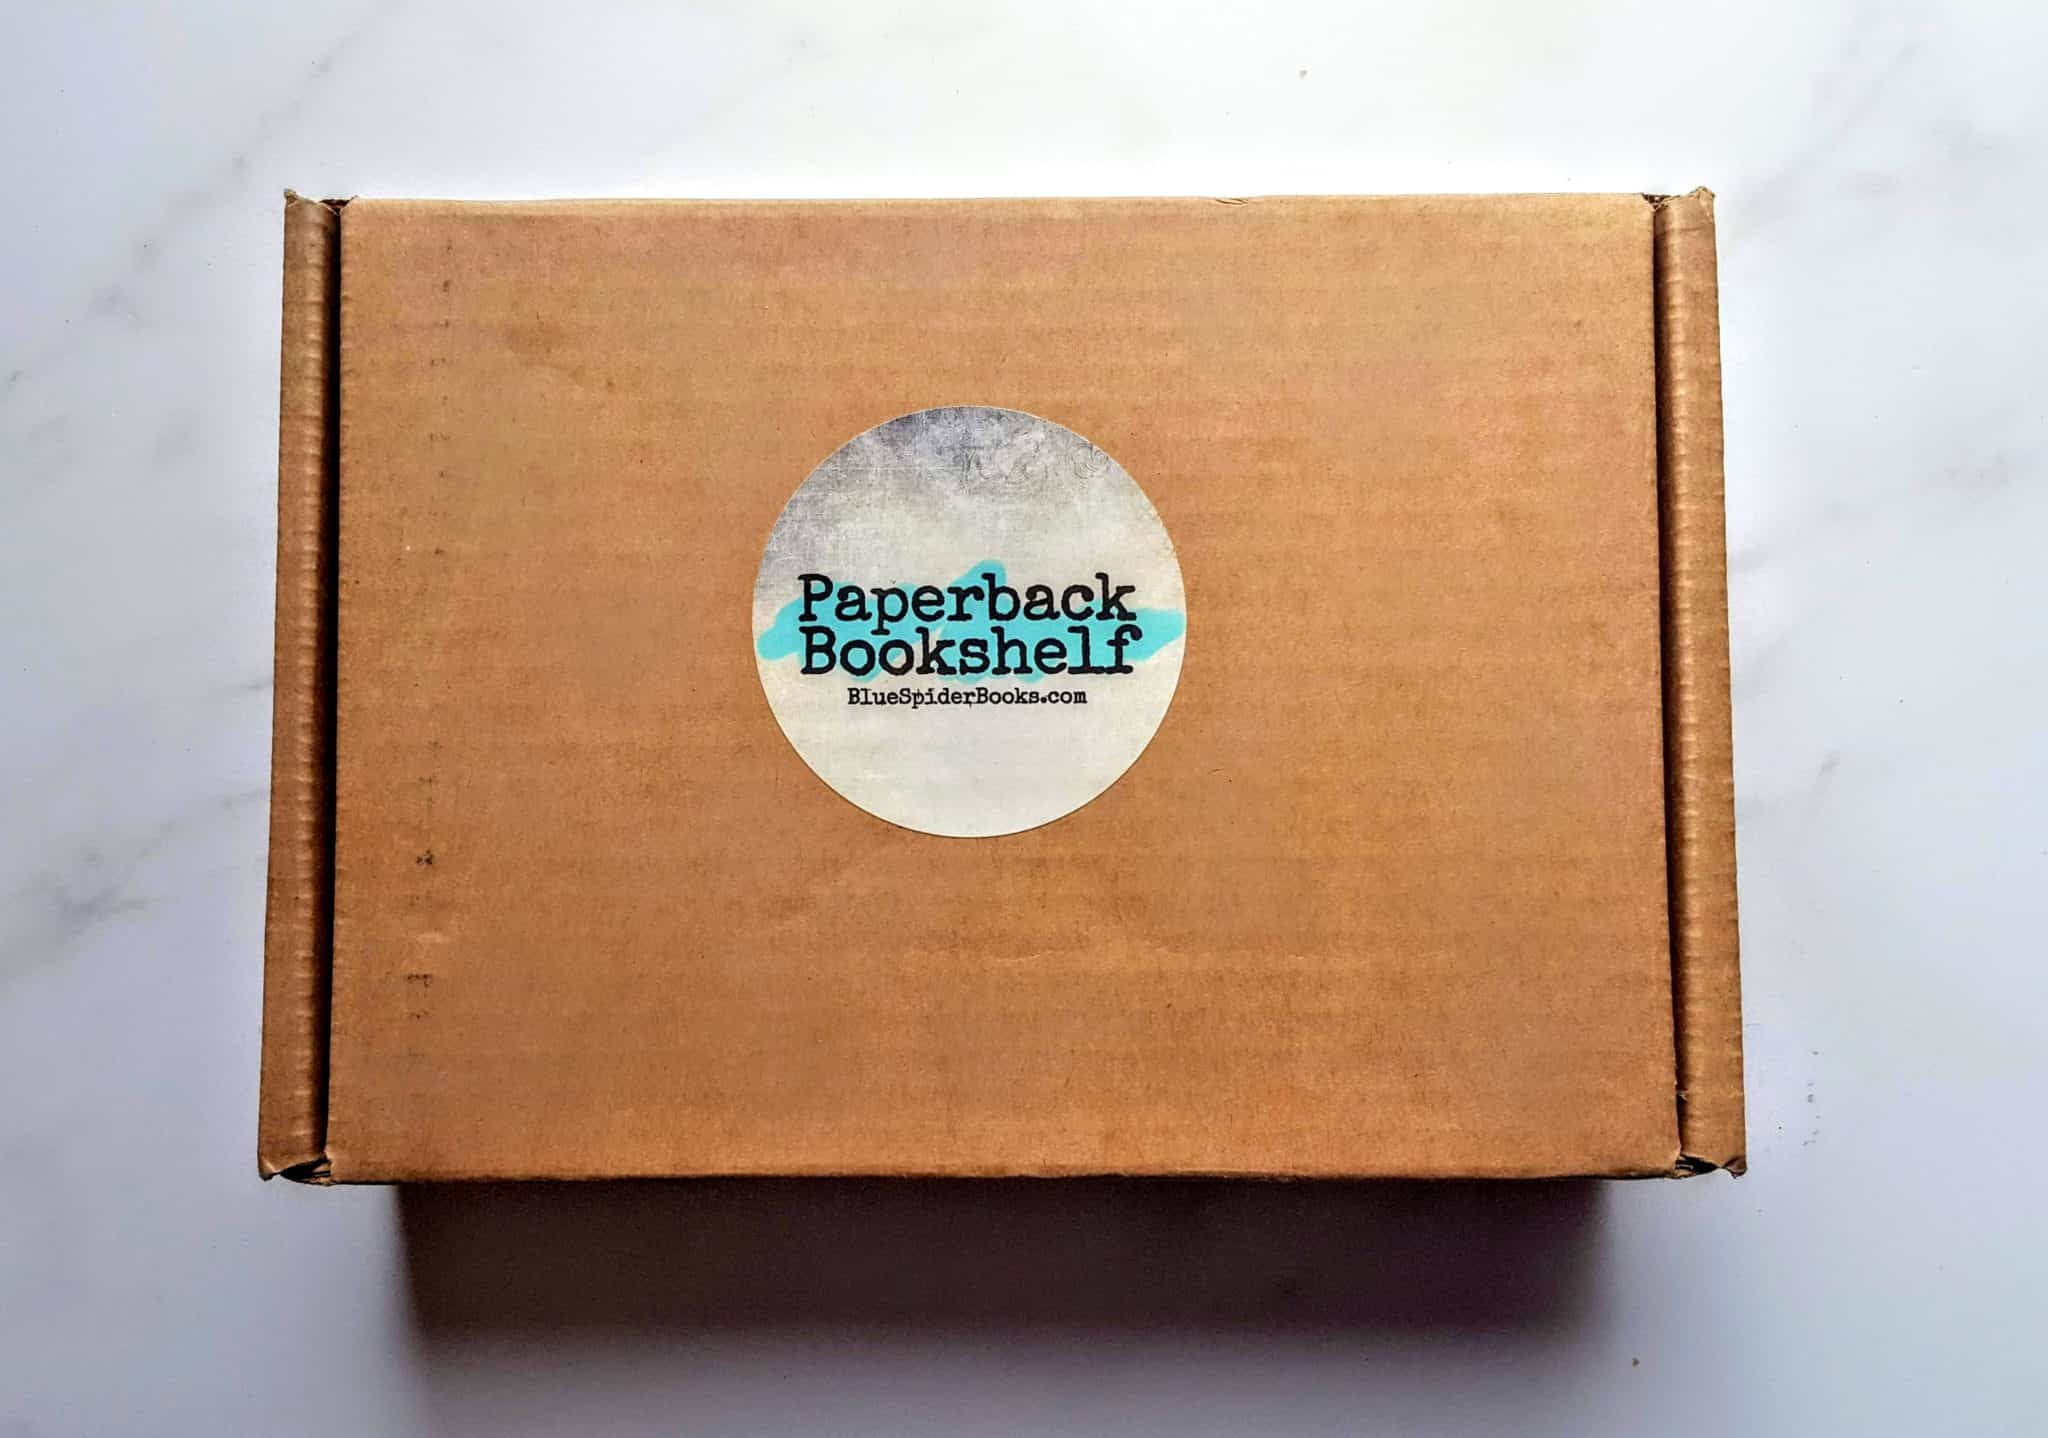 Paperback Bookshelf Subscription Box Review + Coupon + Unboxing | November 2018